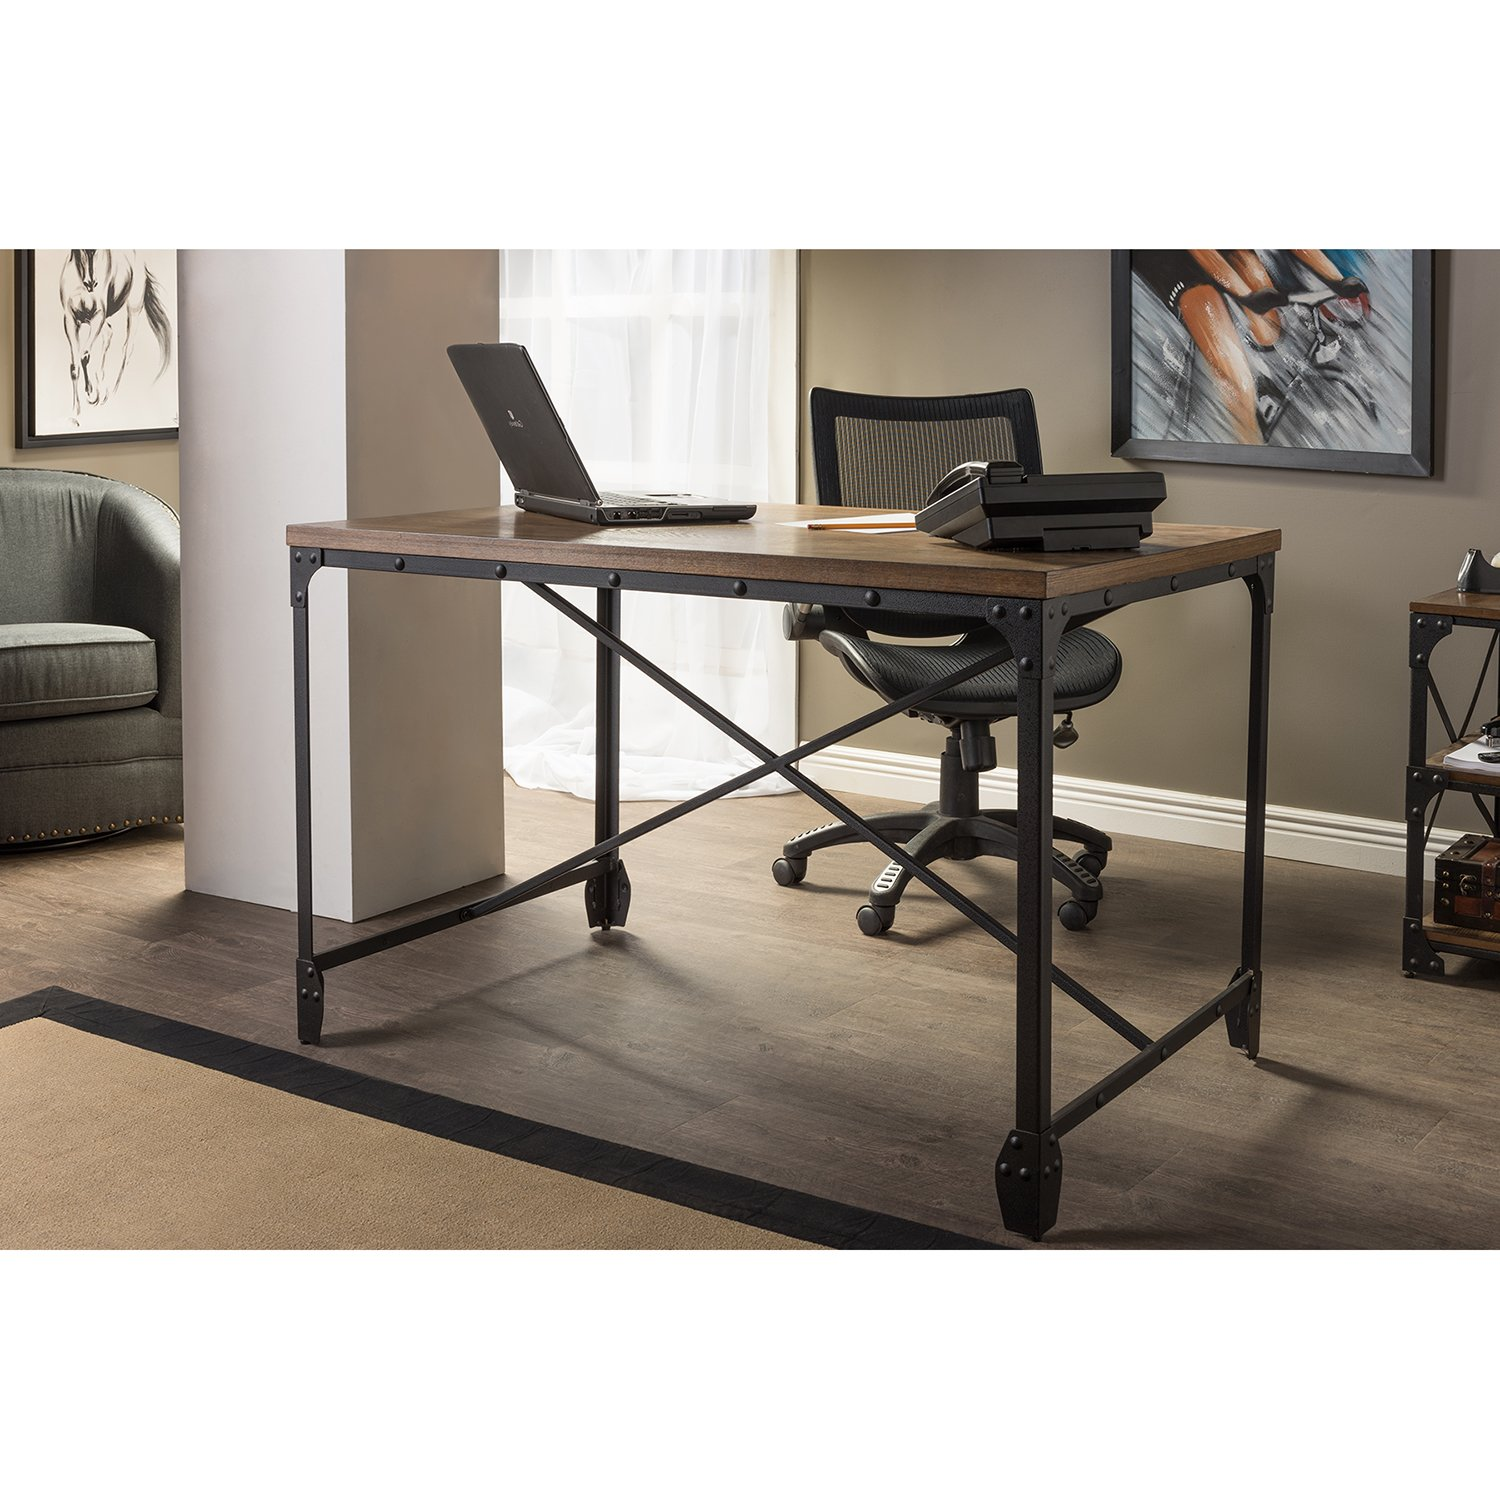 office wood table. Amazon.com: Wholesale Interiors Baxton Studio Greyson Vintage Industrial Home Office Wood Desk, Antique Bronze: Kitchen \u0026 Dining Table